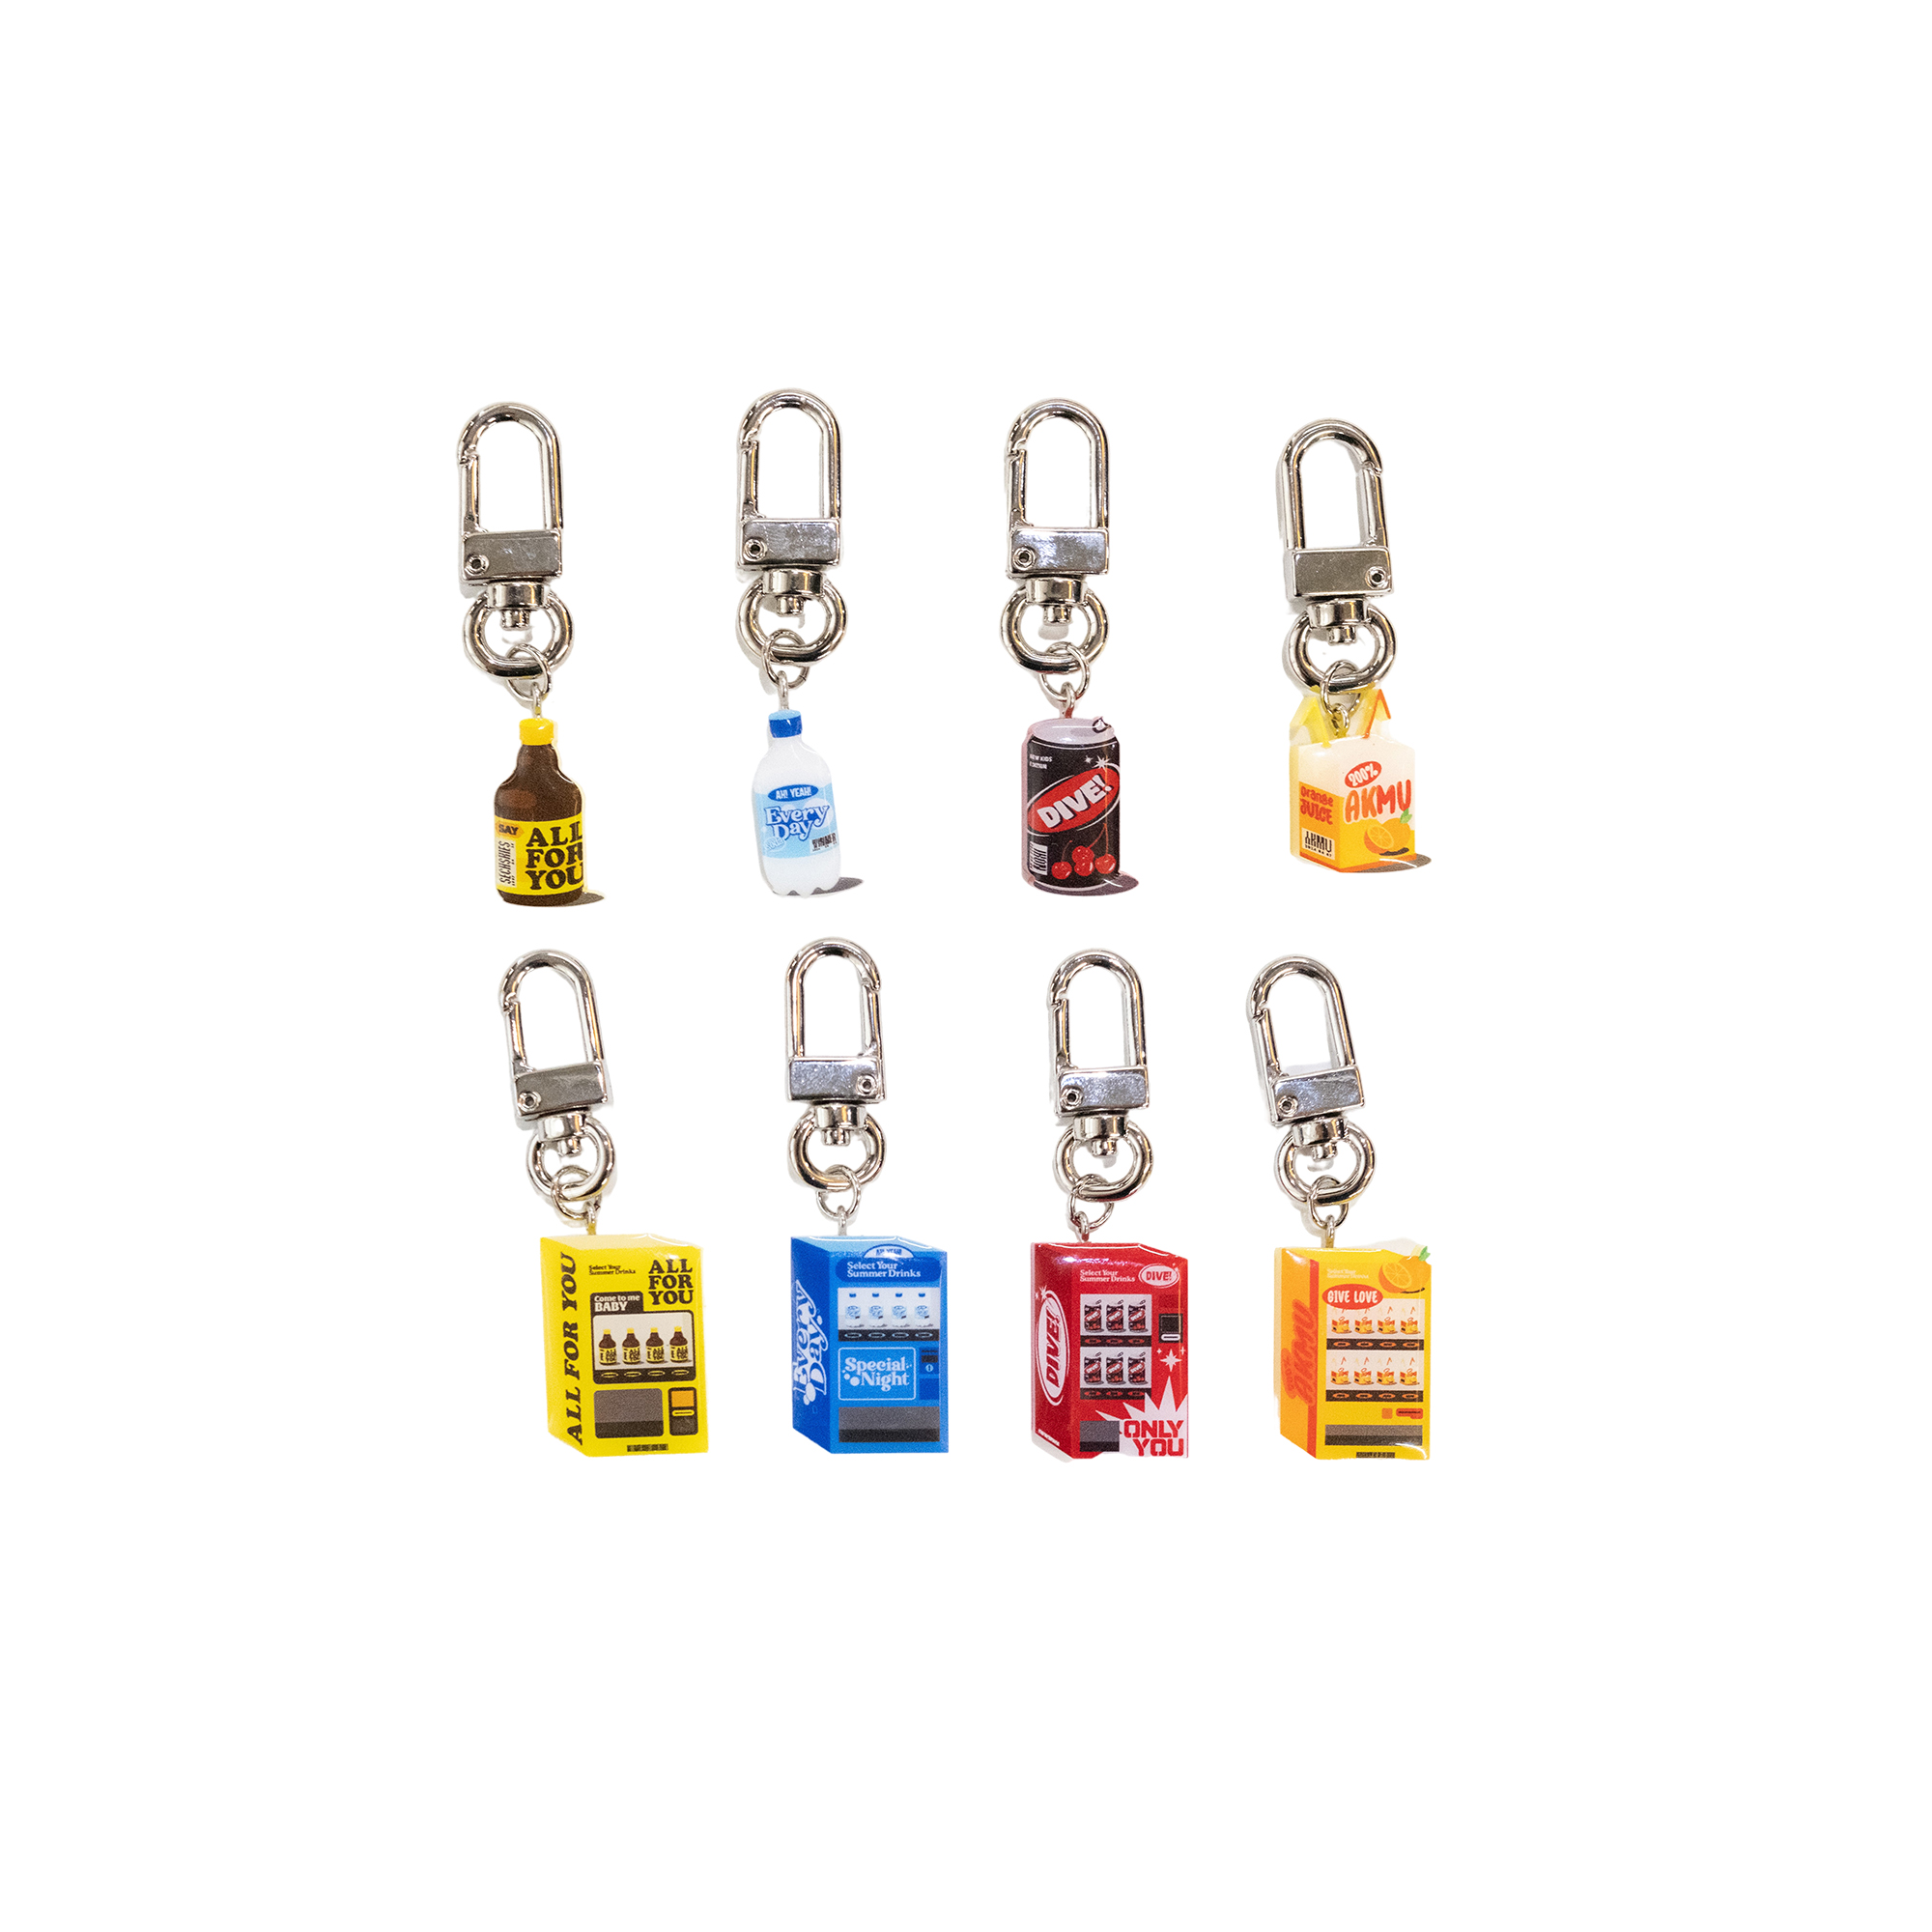 [SUMMER] SUMMER DRINKS KEYRING